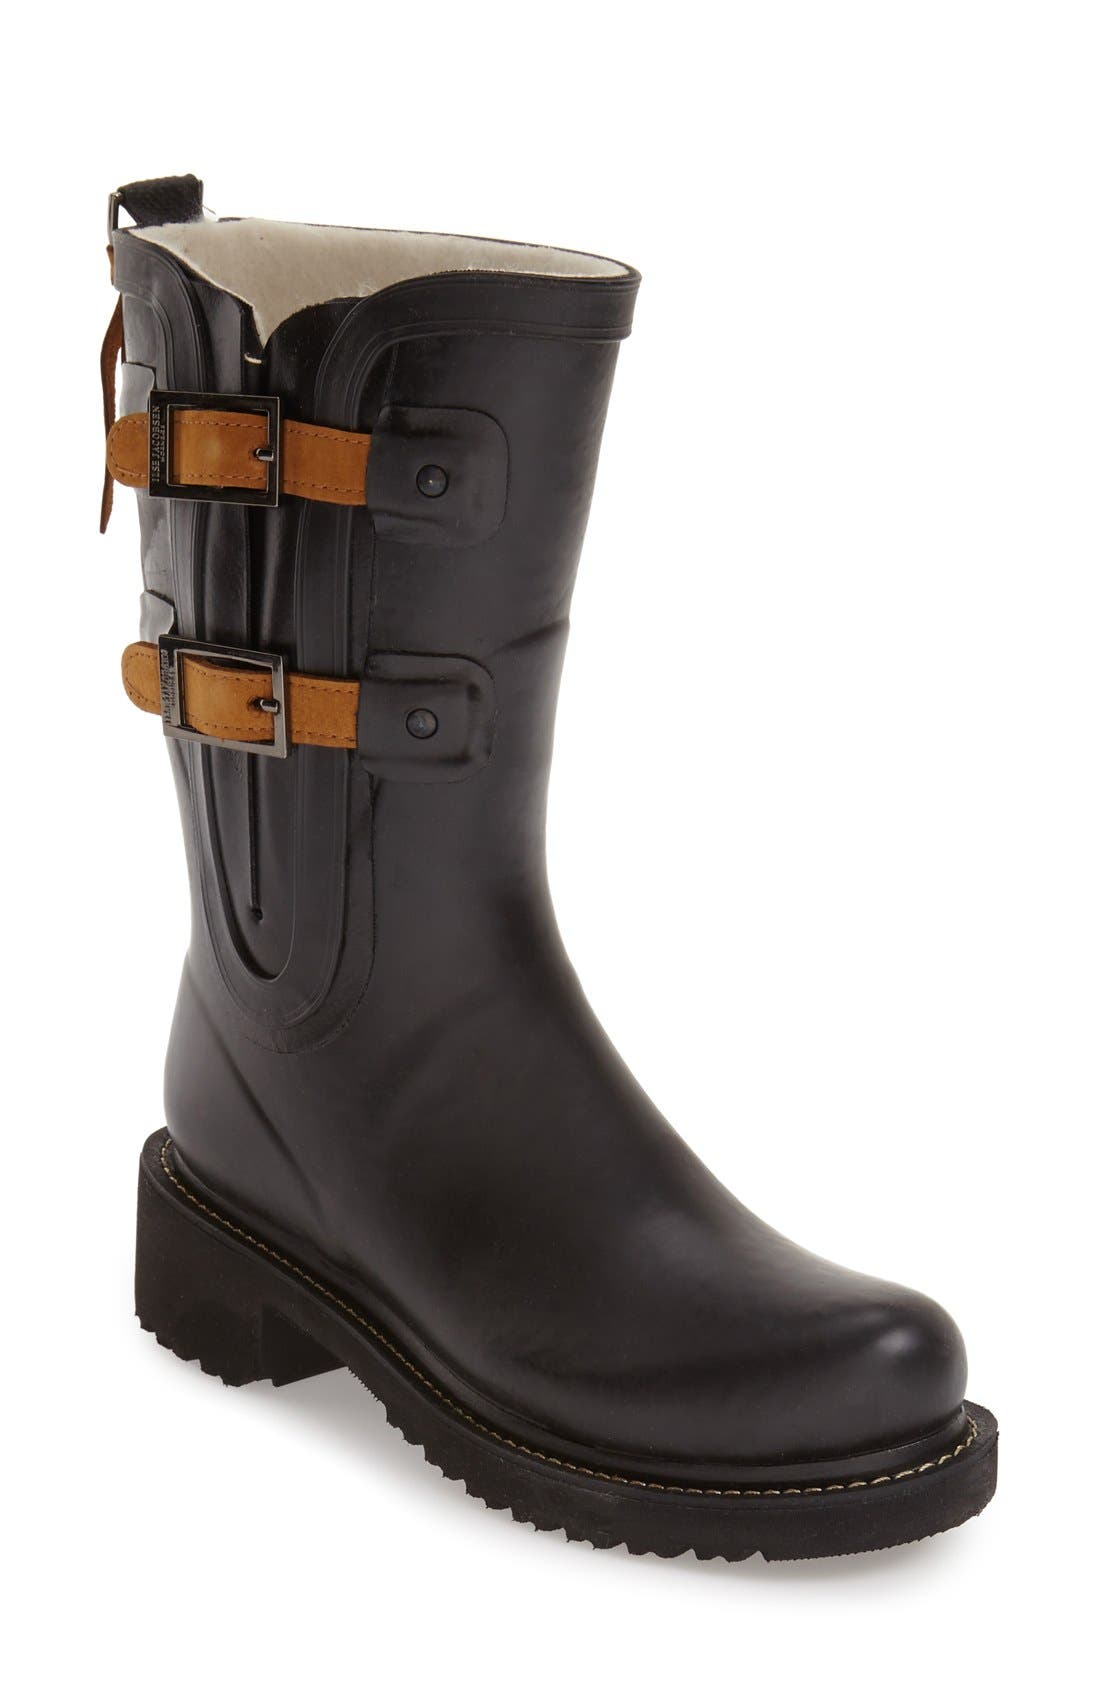 Main Image - Ilse Jacobsen Waterproof Buckle Detail Snow/Rain Boot (Women)